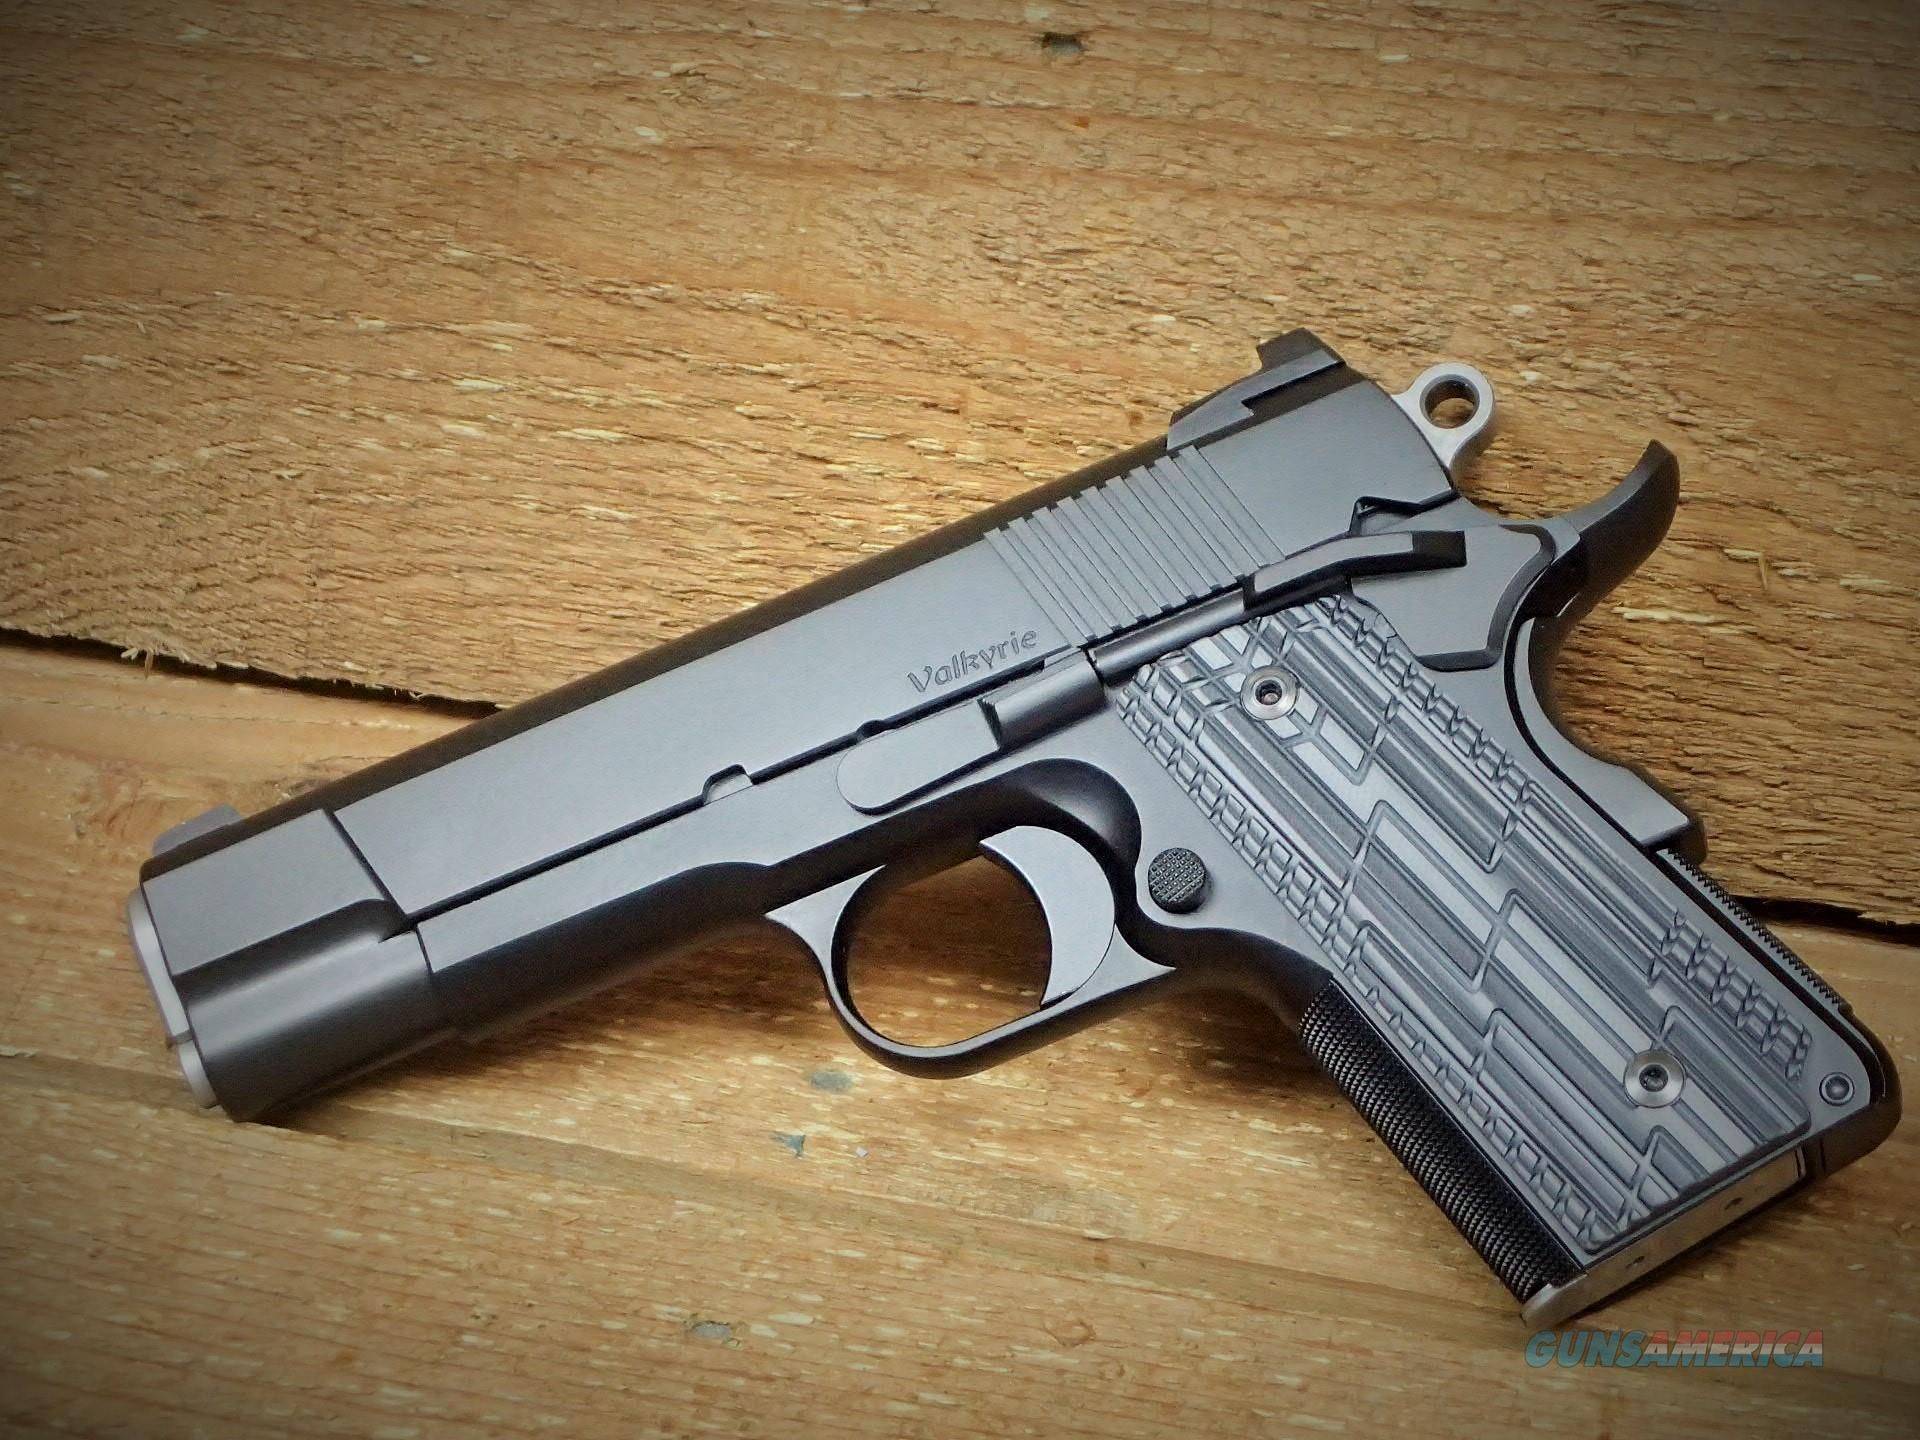 CZ Dan Wesson 1911 Valkyrie 01966 /EASY PAY $153 Monthly  Guns > Pistols > Dan Wesson Pistols/Revolvers > 1911 Style